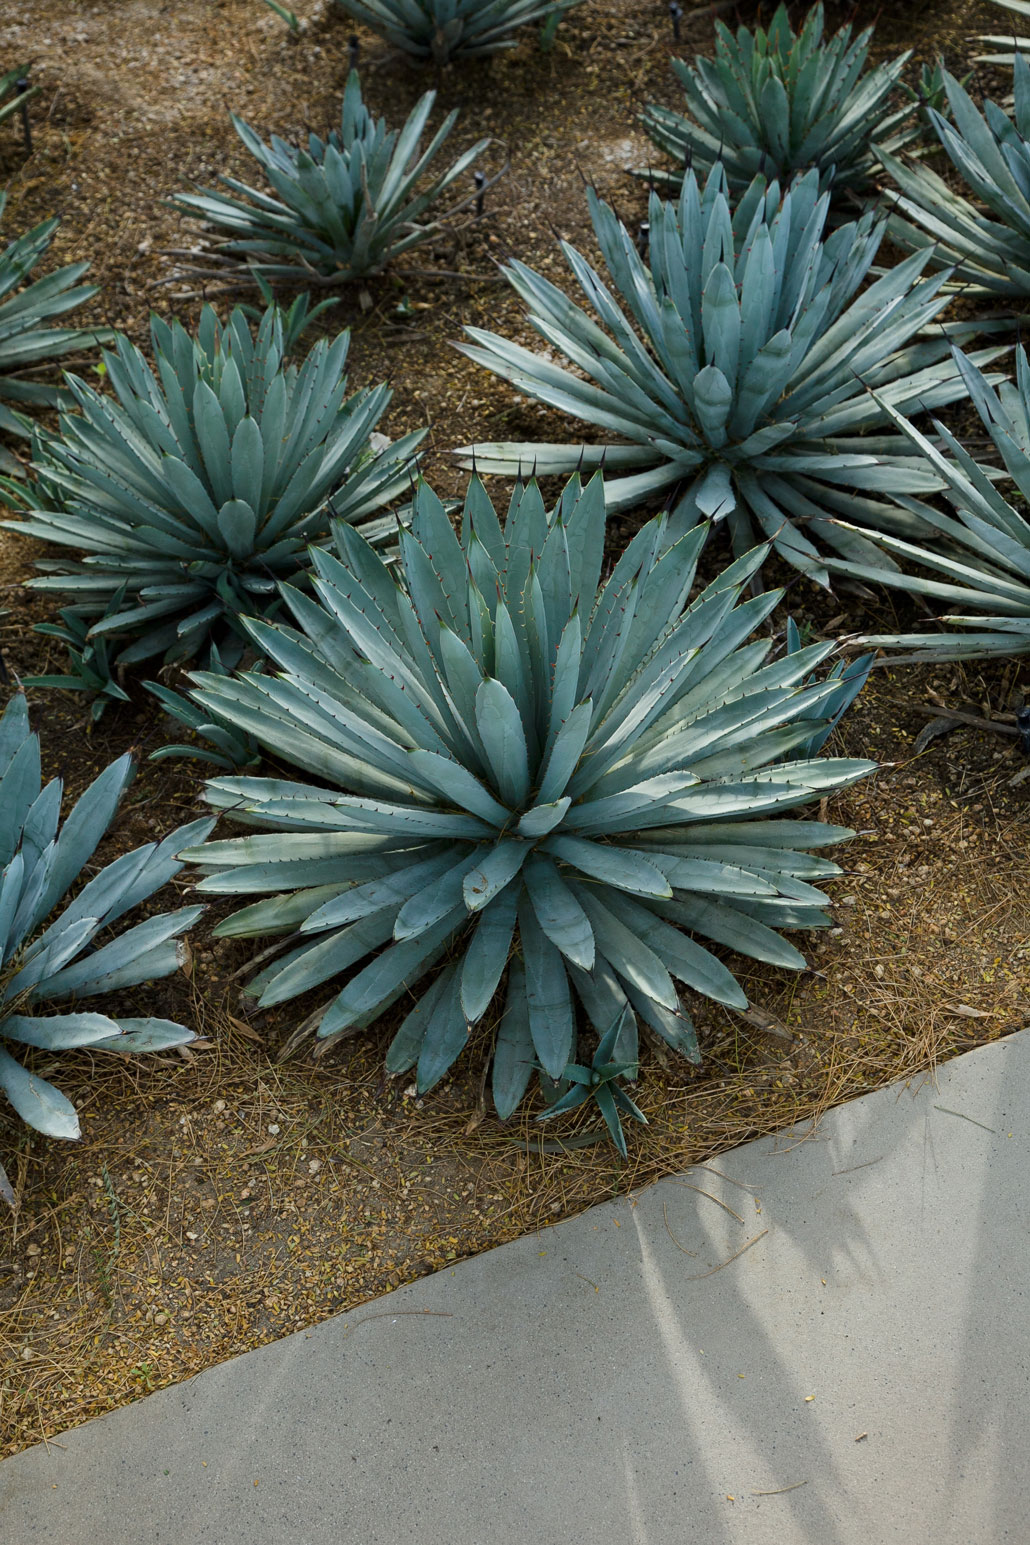 A grouping of Black-spined Agave in the Gardens.